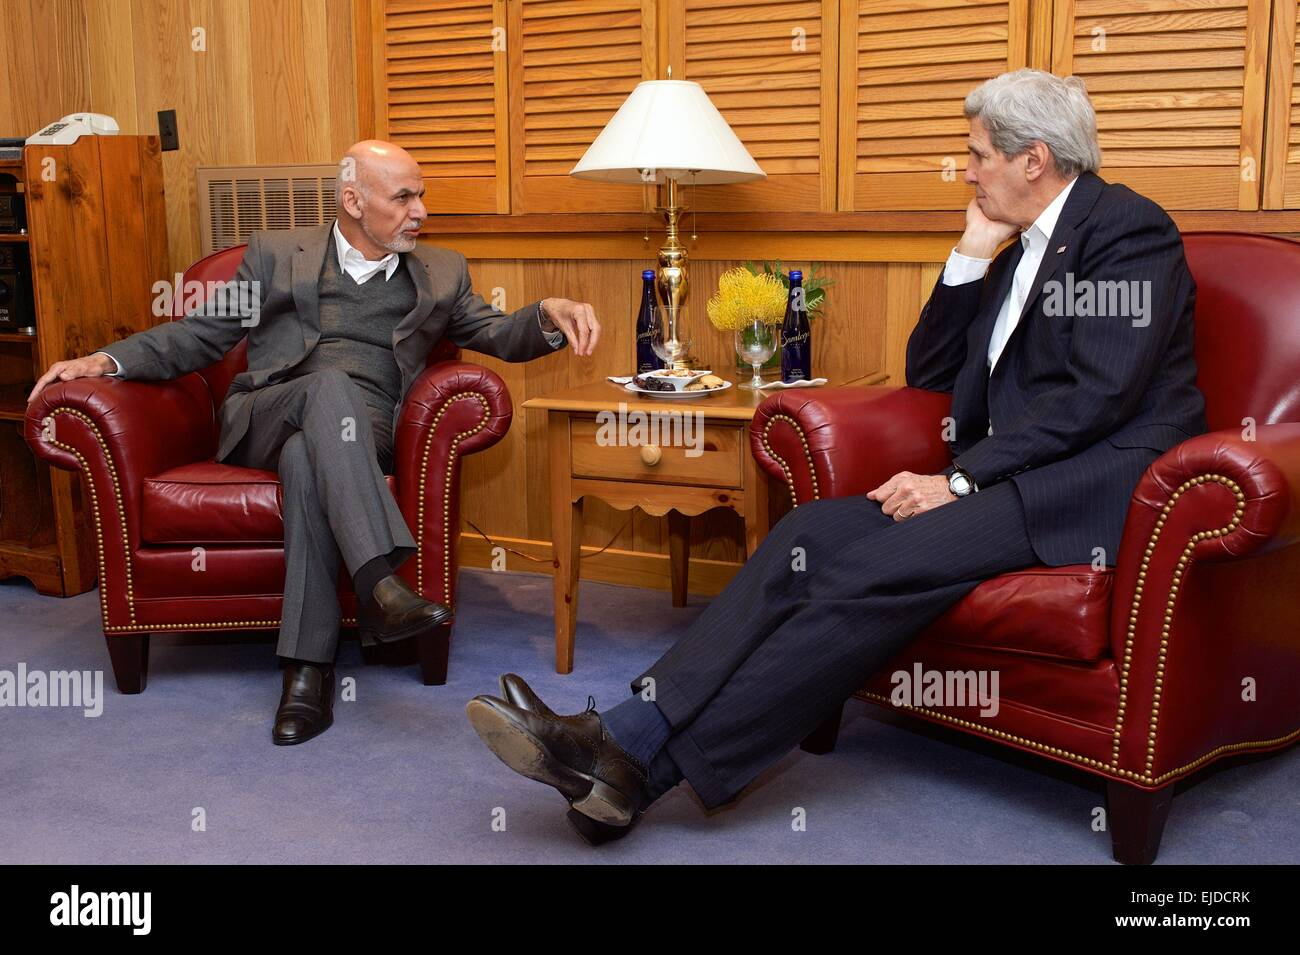 US Secretary of State John Kerry meets with Afghan President Ashraf Ghani during U.S.-Afghan dialogues about security, - Stock Image